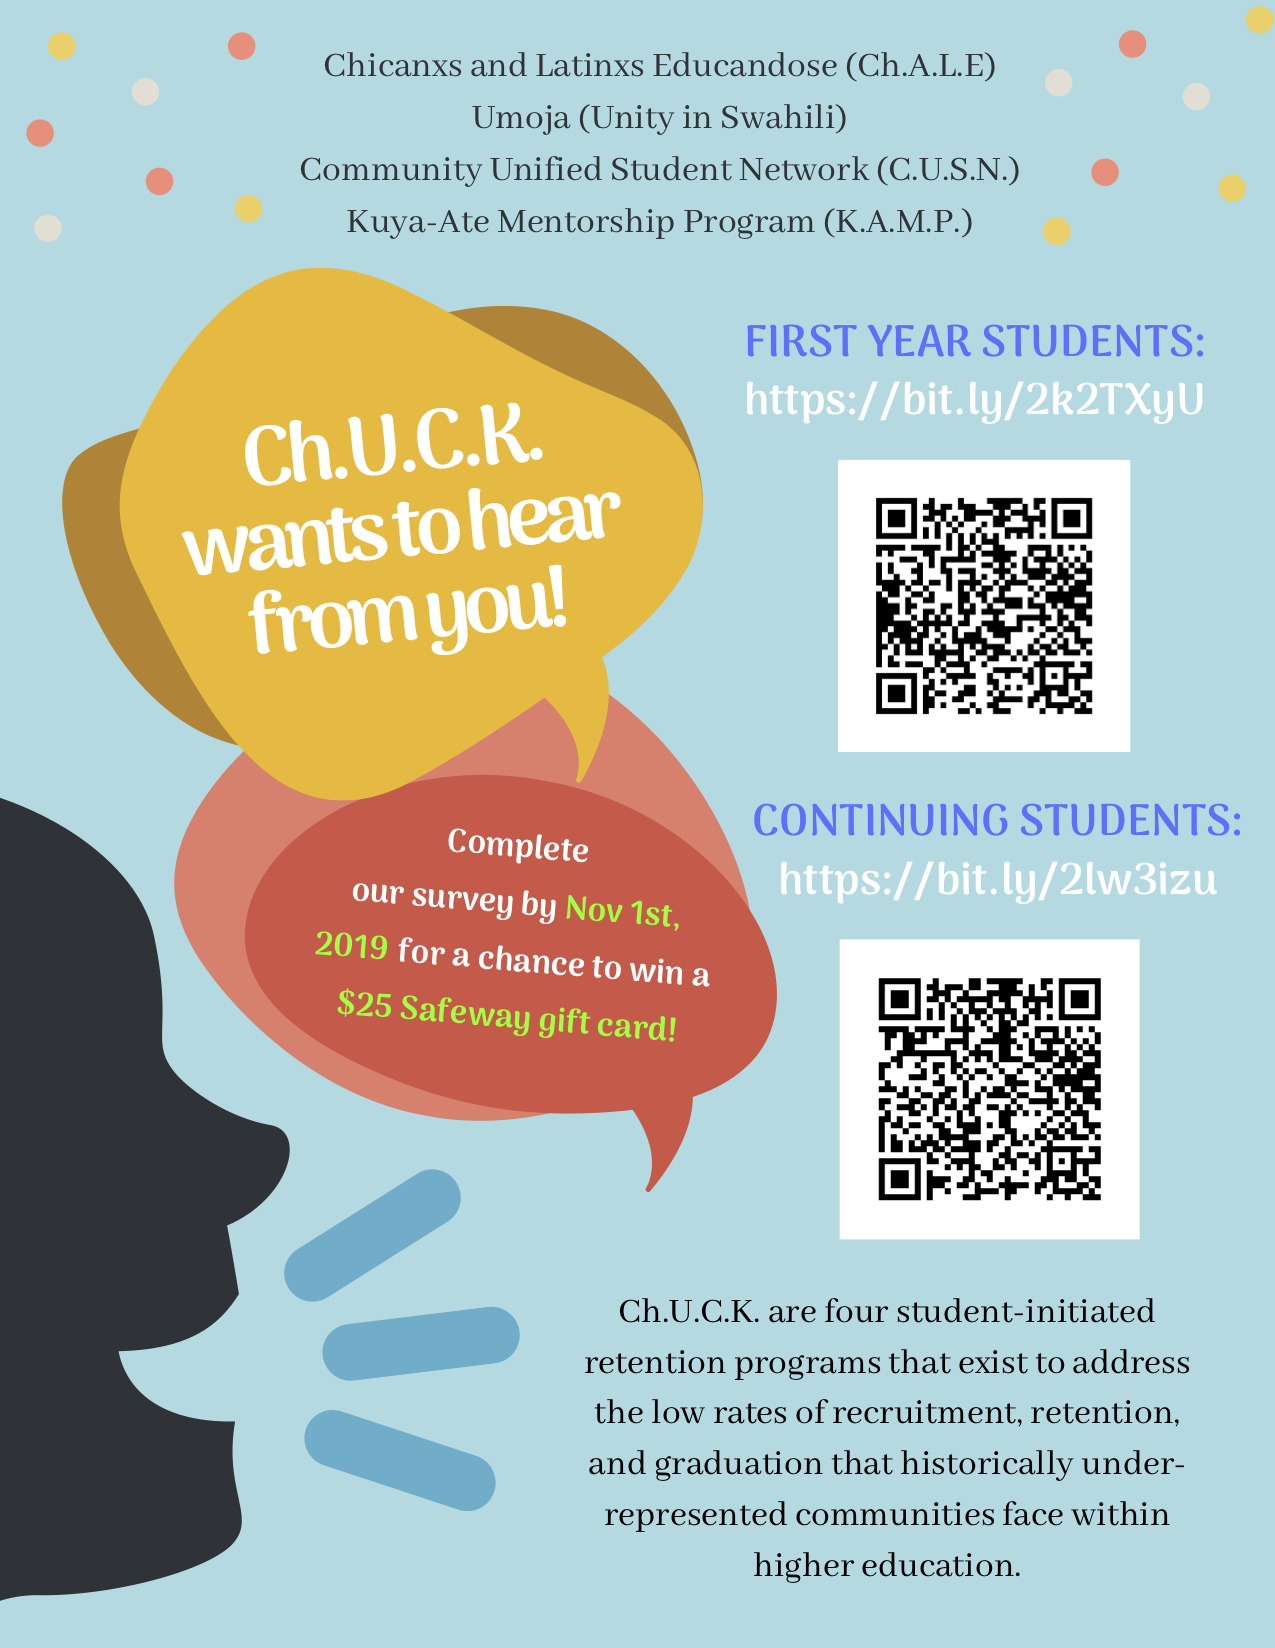 Fill out the Ch.U.C.K. survey! - Did you know that the six-year graduation rate for students of color range from 27 to 57 percent? Despite the increase of diversity in student population in higher education, universities continue to face difficulties in retaining underrepresented student populations. In order to combat low retention rates, Ch.U.C.K. has created a survey to create programming based on the needs of our communities. So, take the survey so that we can better understand how we can support you!Click here to go to the survey for first year students!Click here to go to the survey for continuing students!